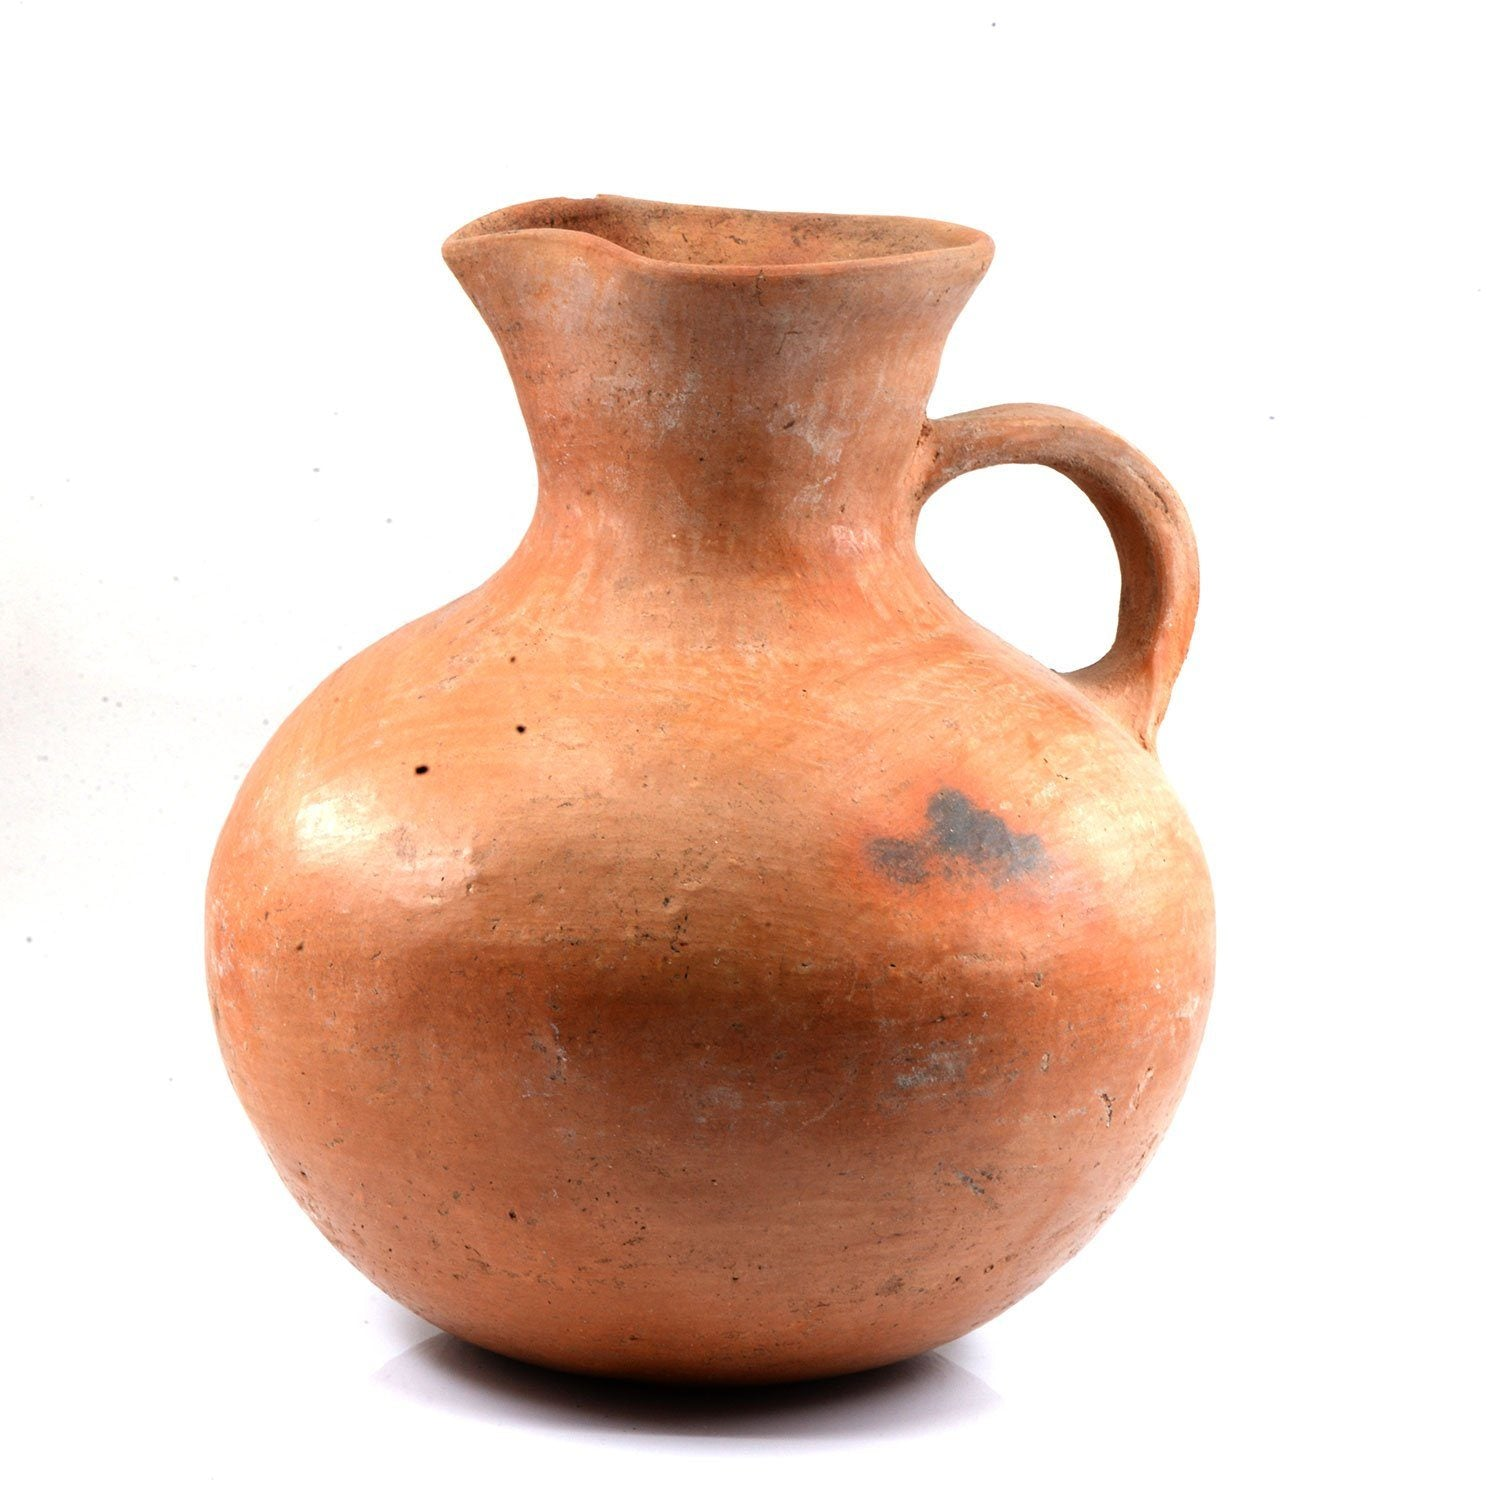 A Persian Terracotta Vessel with Handle, Achaemenid Period, ca. 550 -330 BCE - Sands of Time Ancient Art